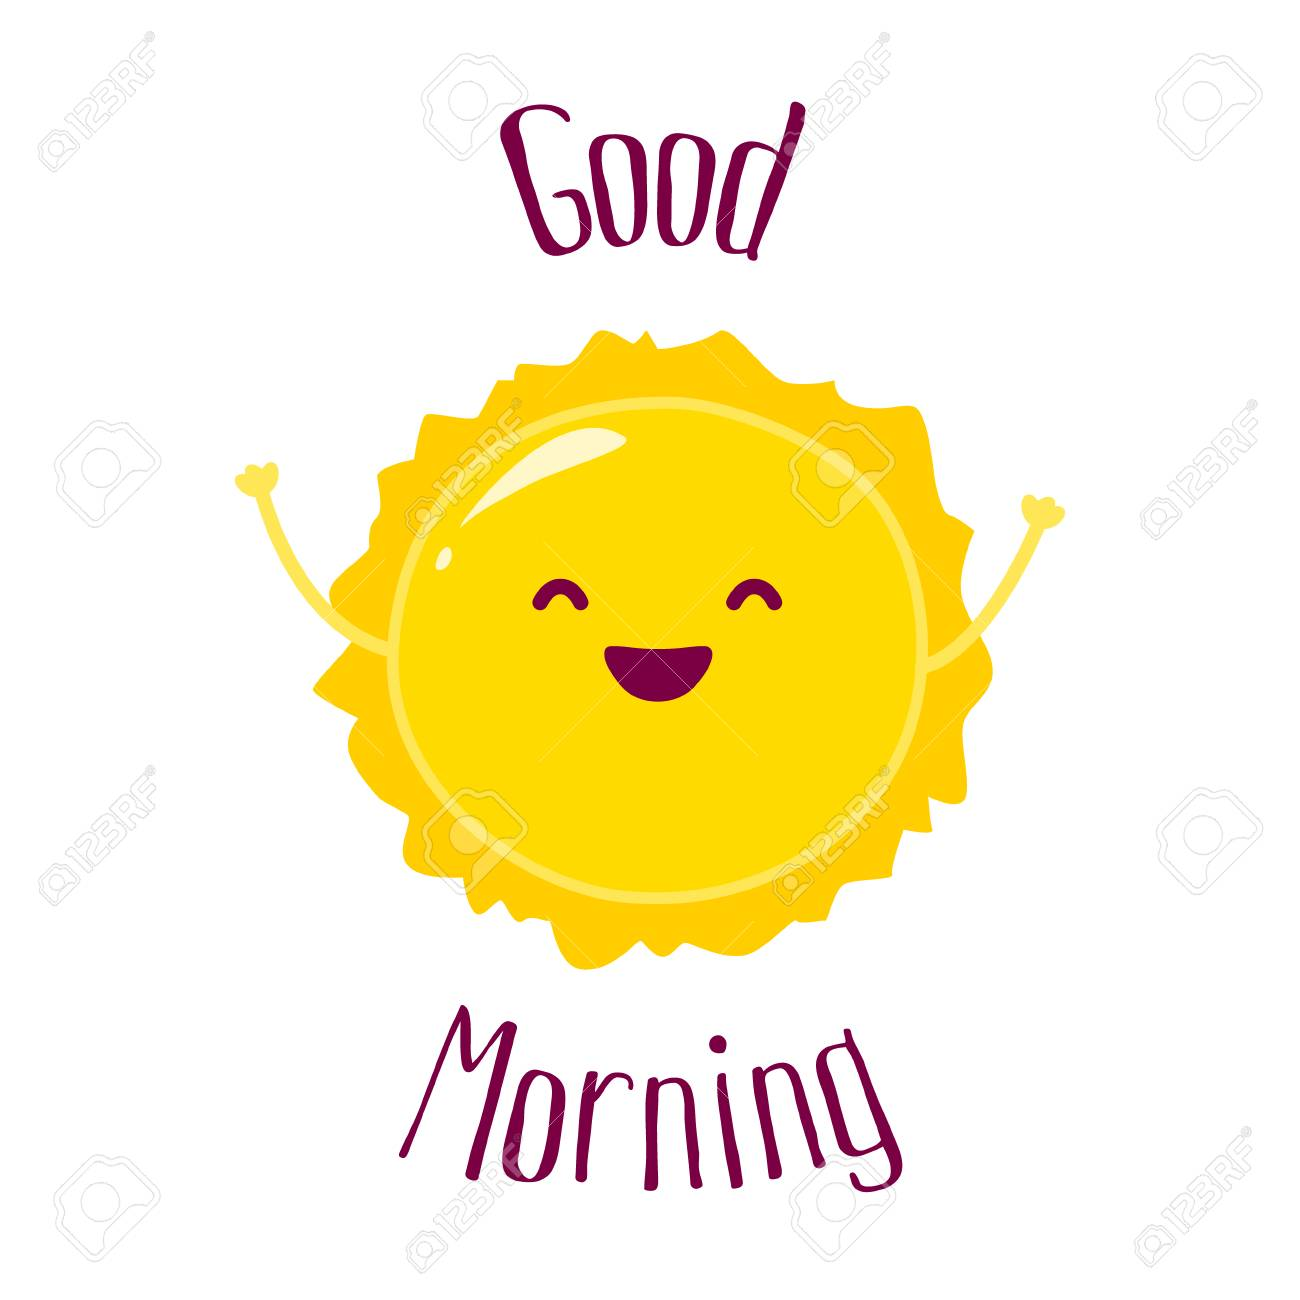 Funny Cartoon Sun Raises Hands Up And Smiles Good Morning Card